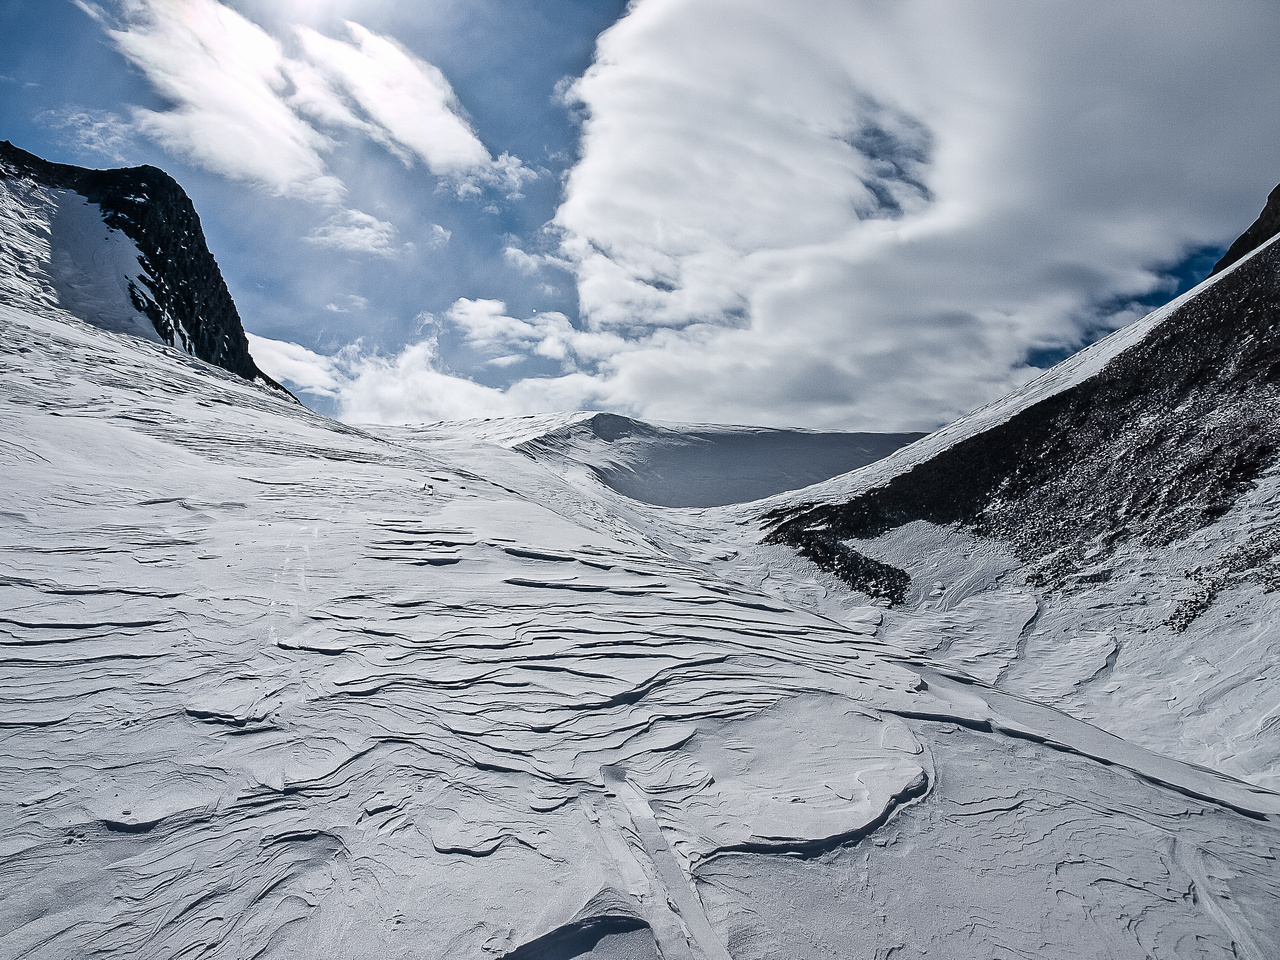 Skiing to the French / Robertson col.